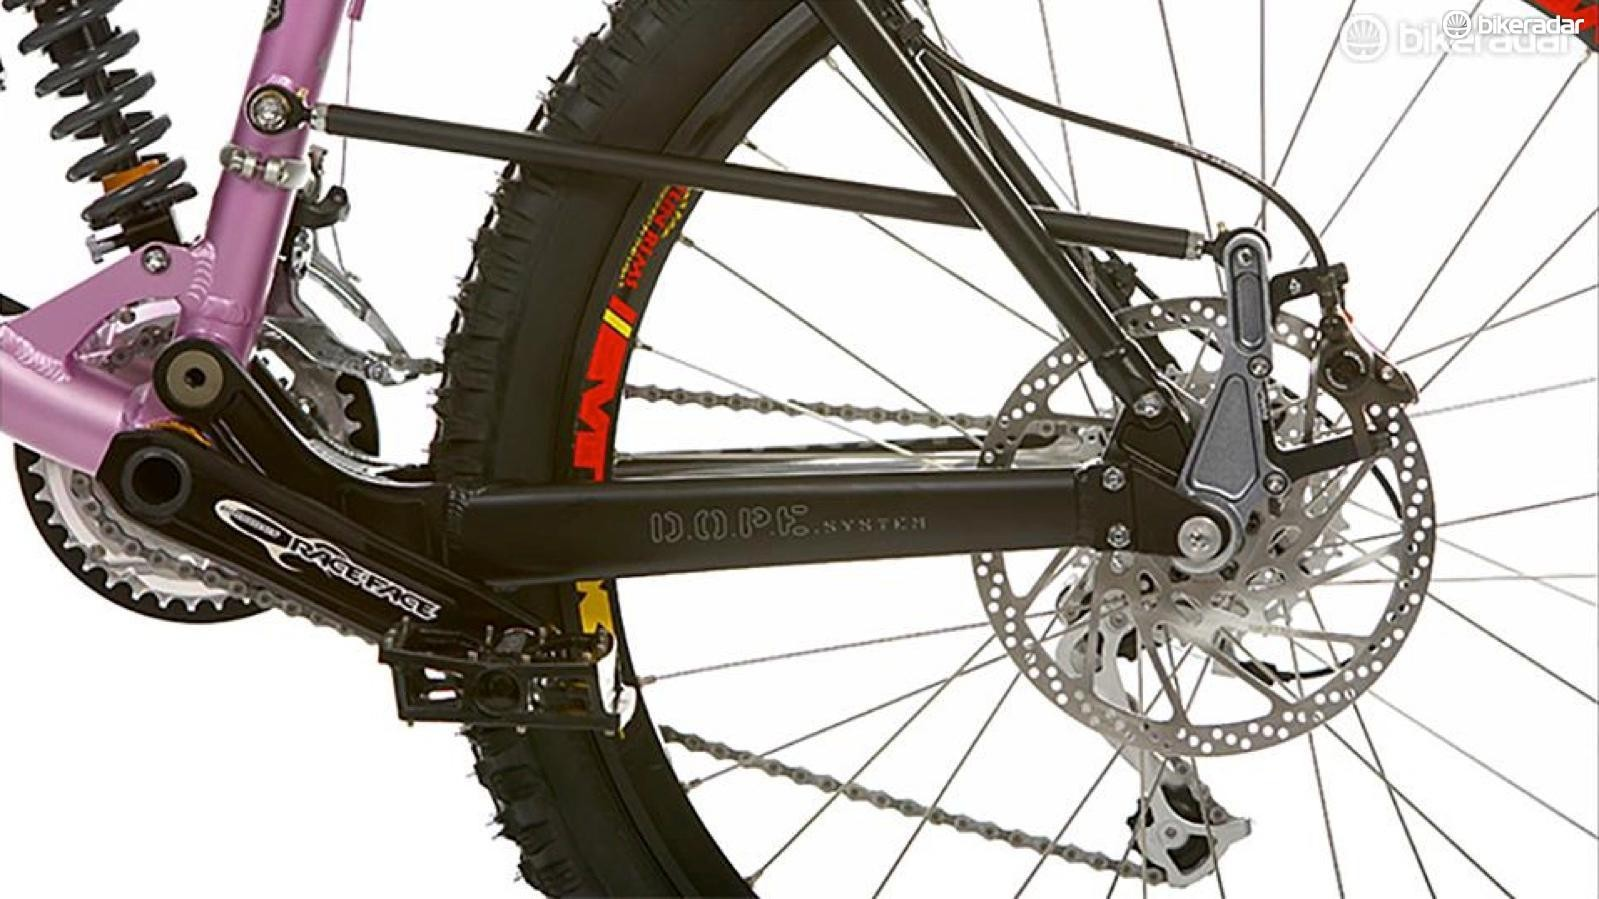 Brake arms reduced anti-rise by 'floating' the caliper between the chainstay and a secondary link, such that its IC was further forward